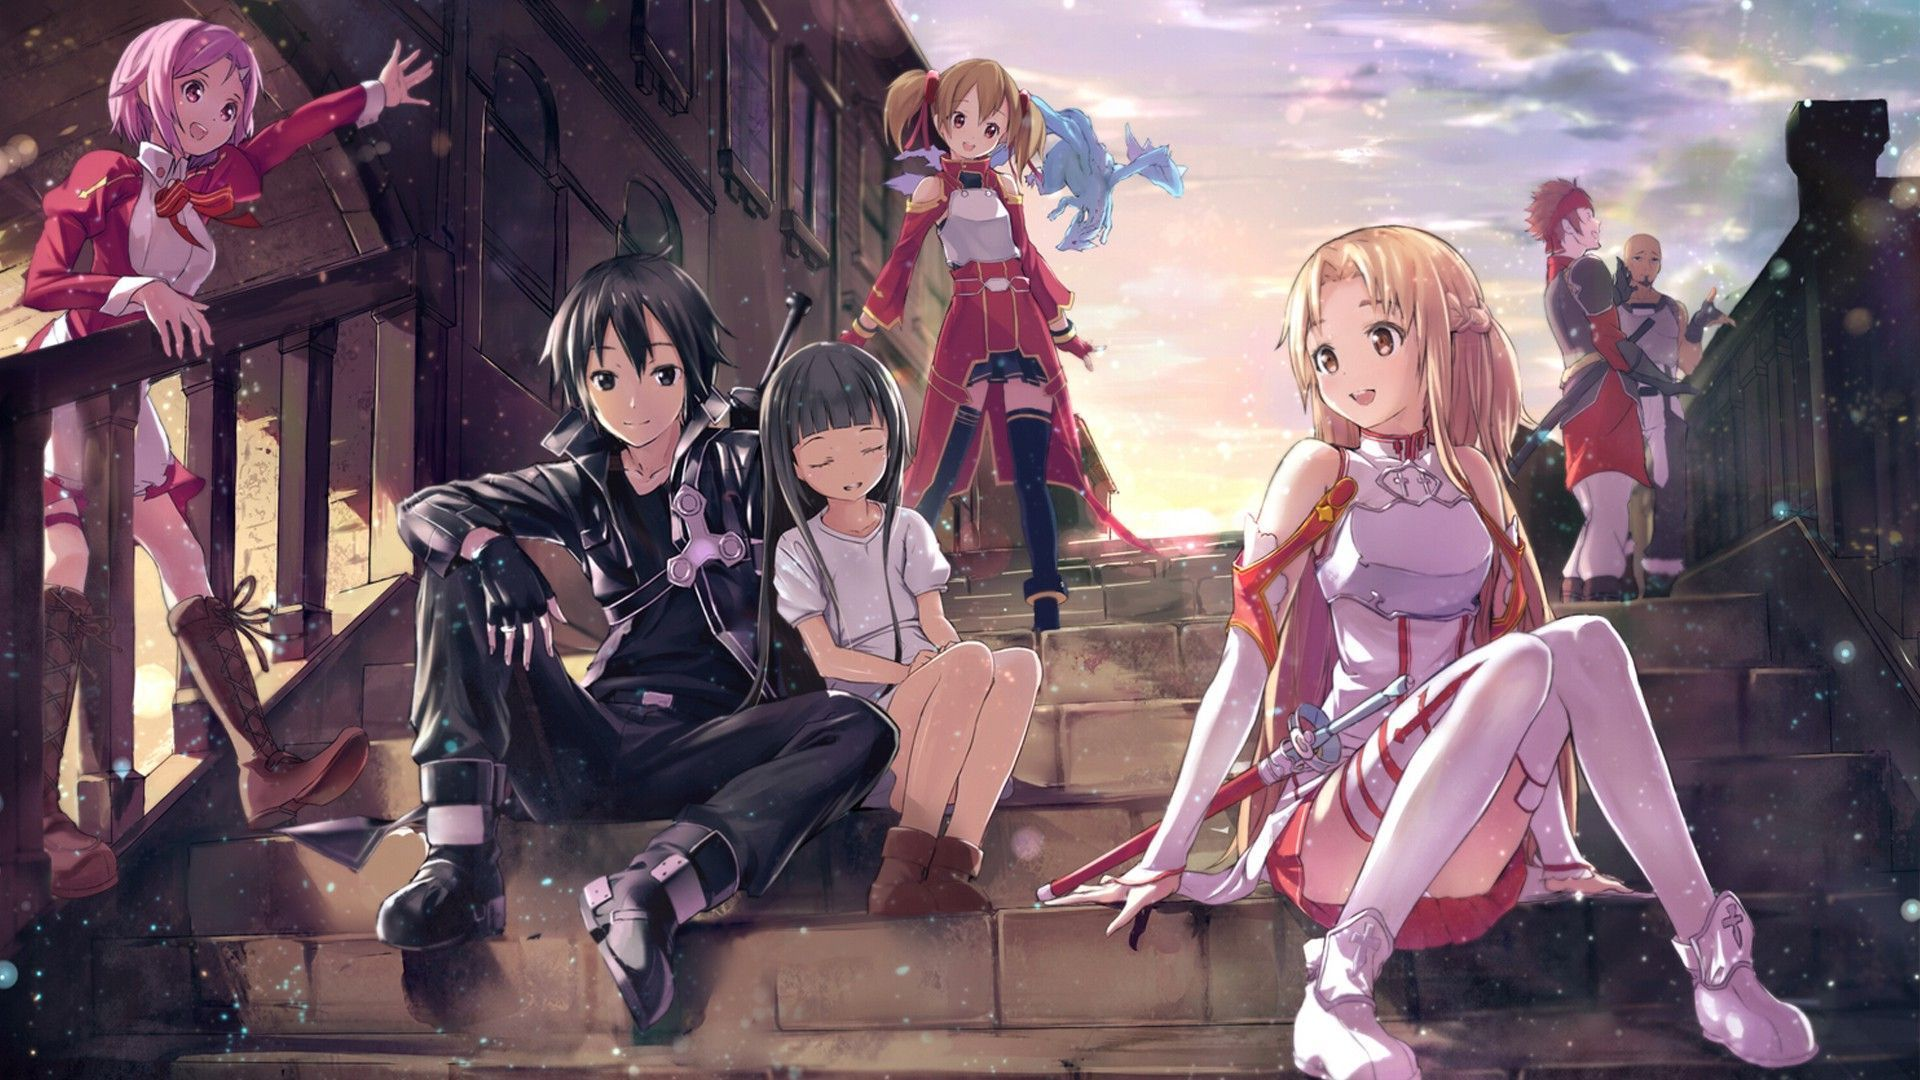 Sword Art Online Wallpaper this is my wallpaper ) Меч